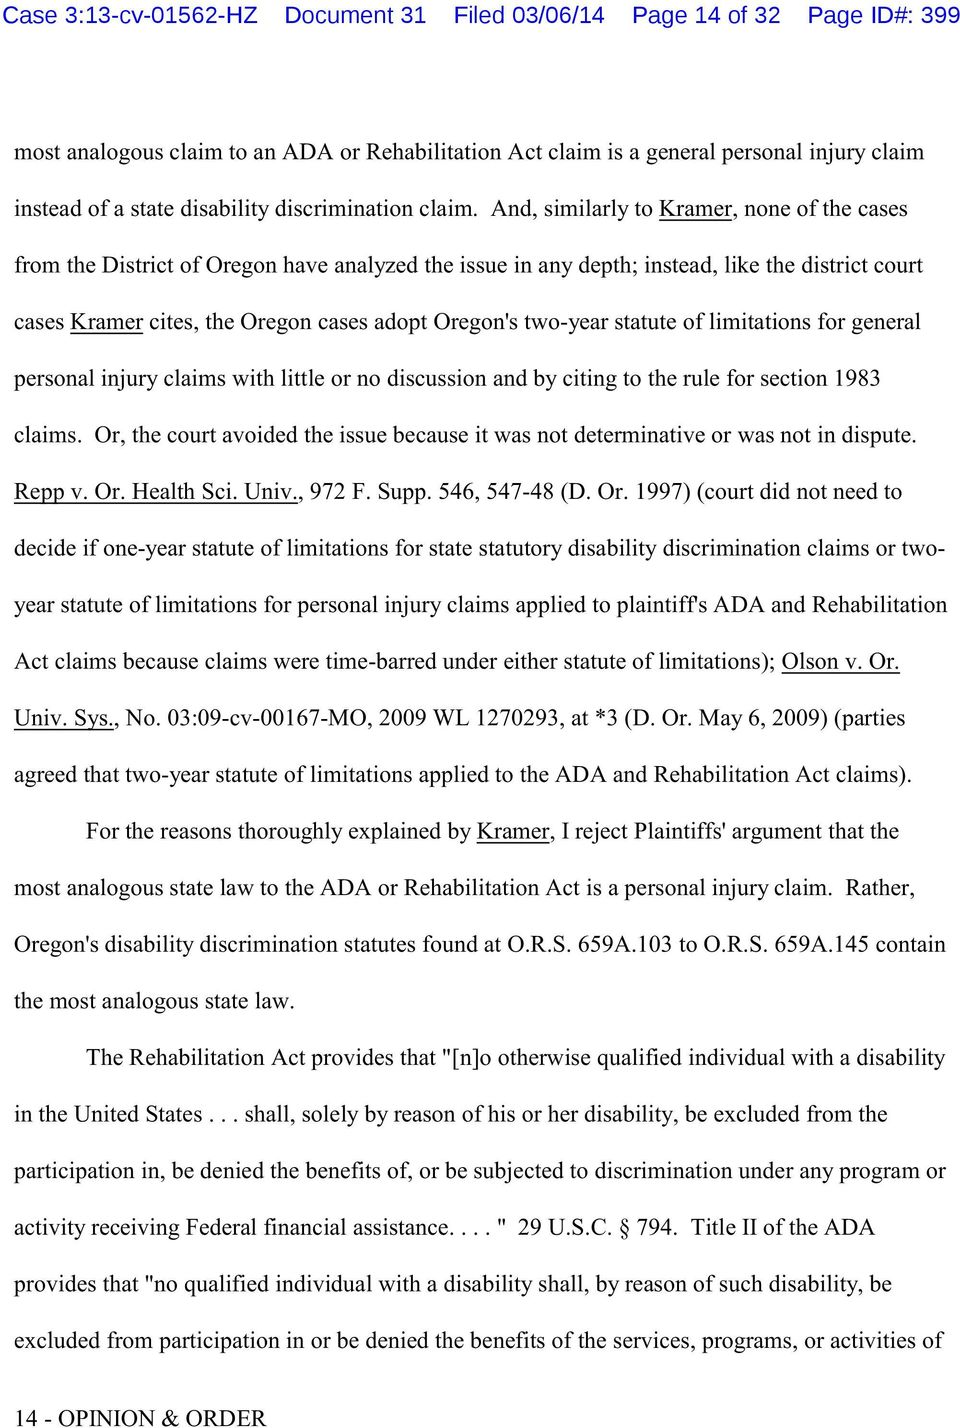 And, similarly to Kramer, none of the cases from the District of Oregon have analyzed the issue in any depth; instead, like the district court cases Kramer cites, the Oregon cases adopt Oregon's